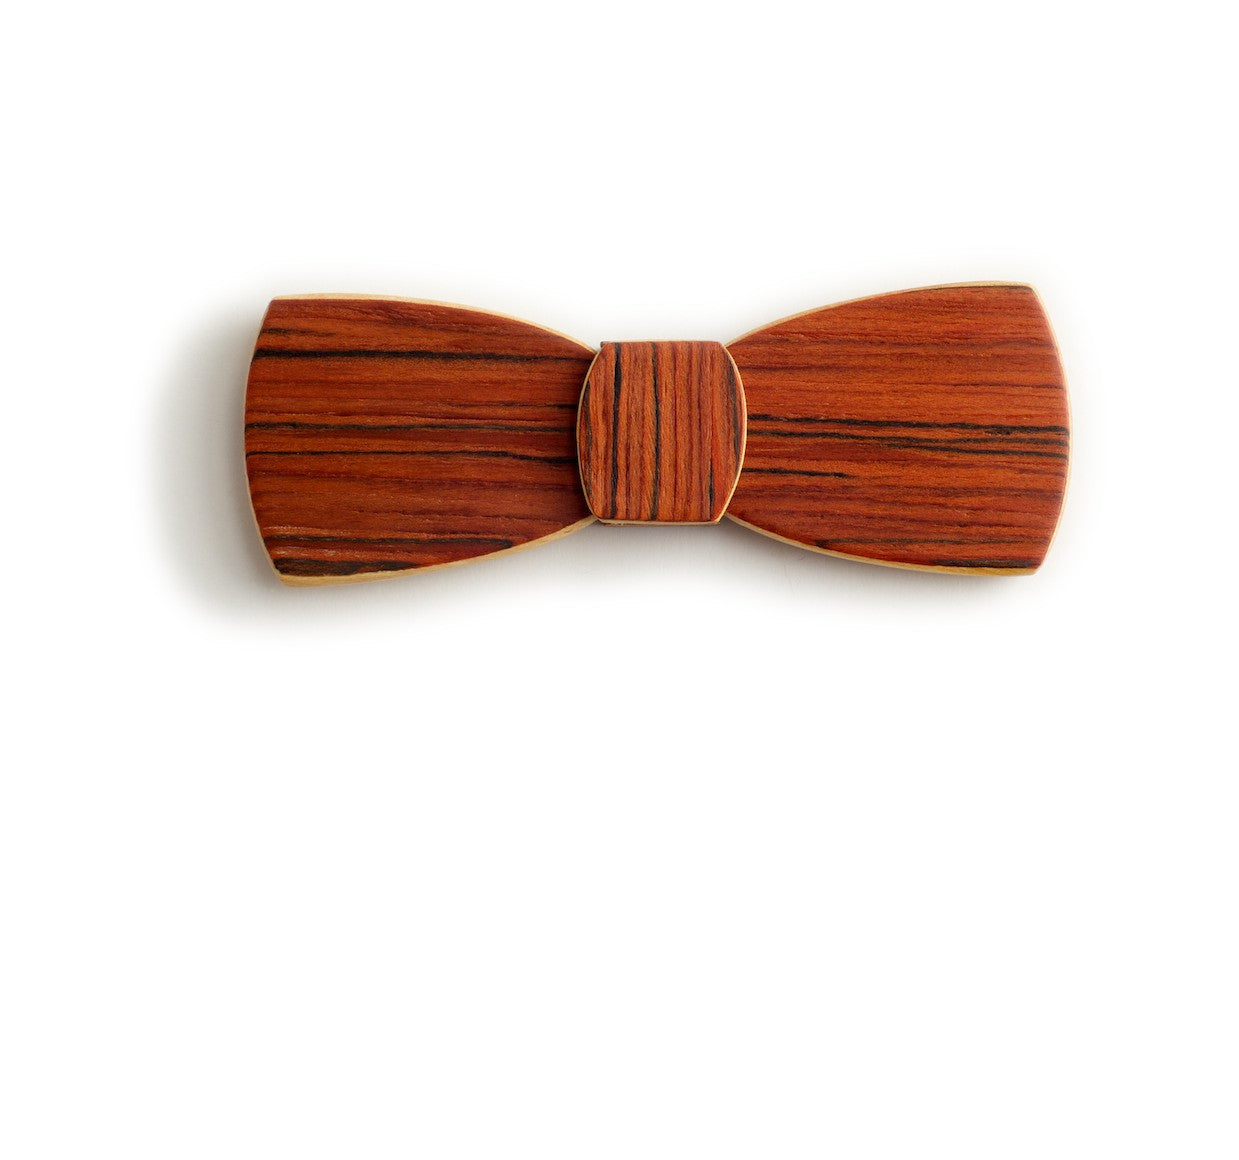 shepherds delight hipster wood bow tie a quirky gift for men